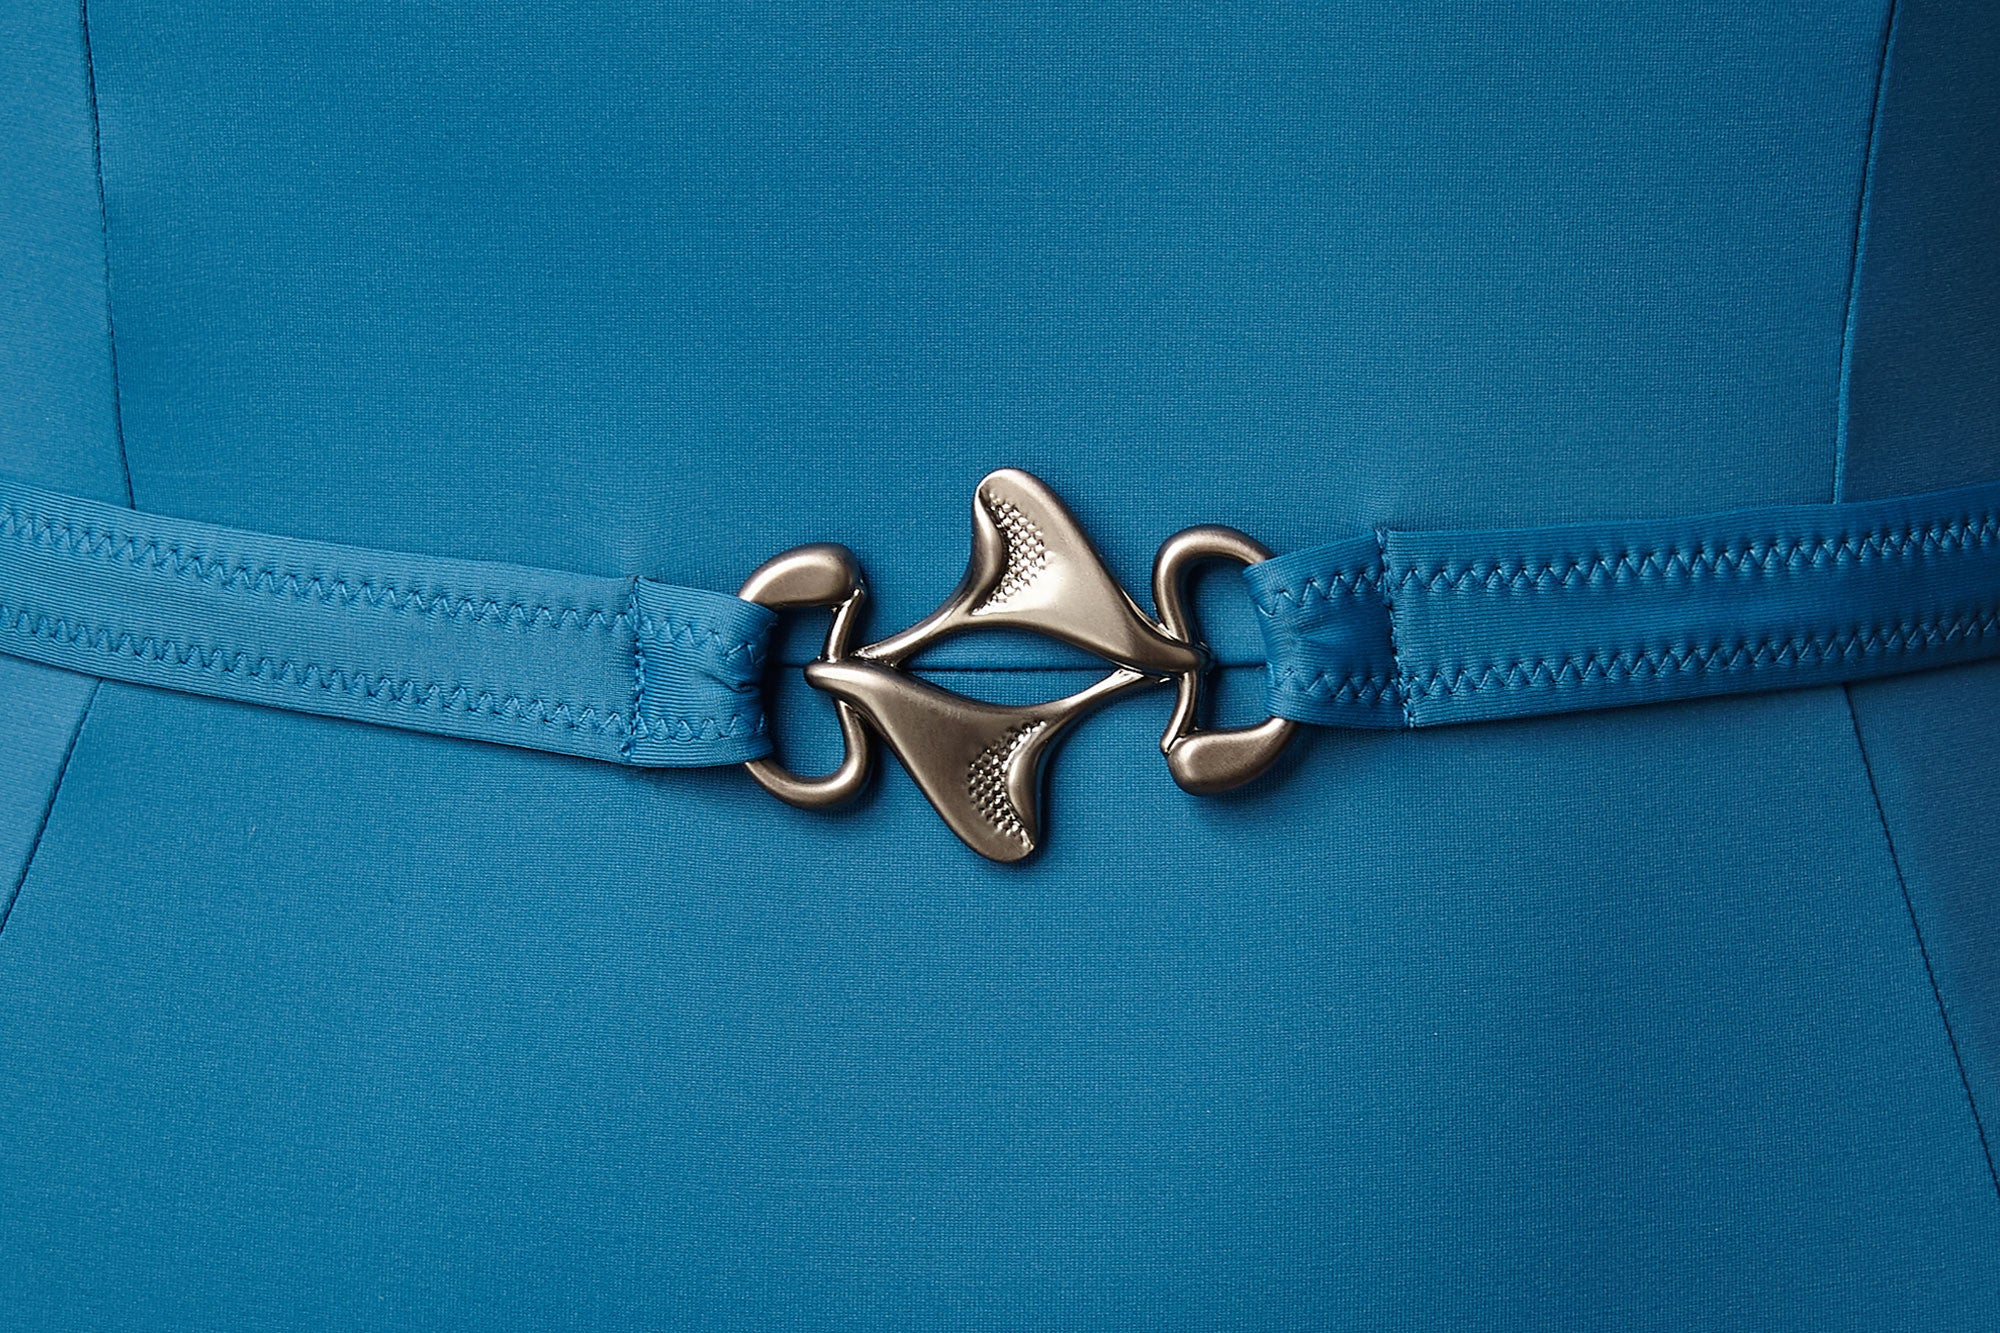 StingRay Accessory on luxury swimwear belt detail on FoxTrot blue swimsuit